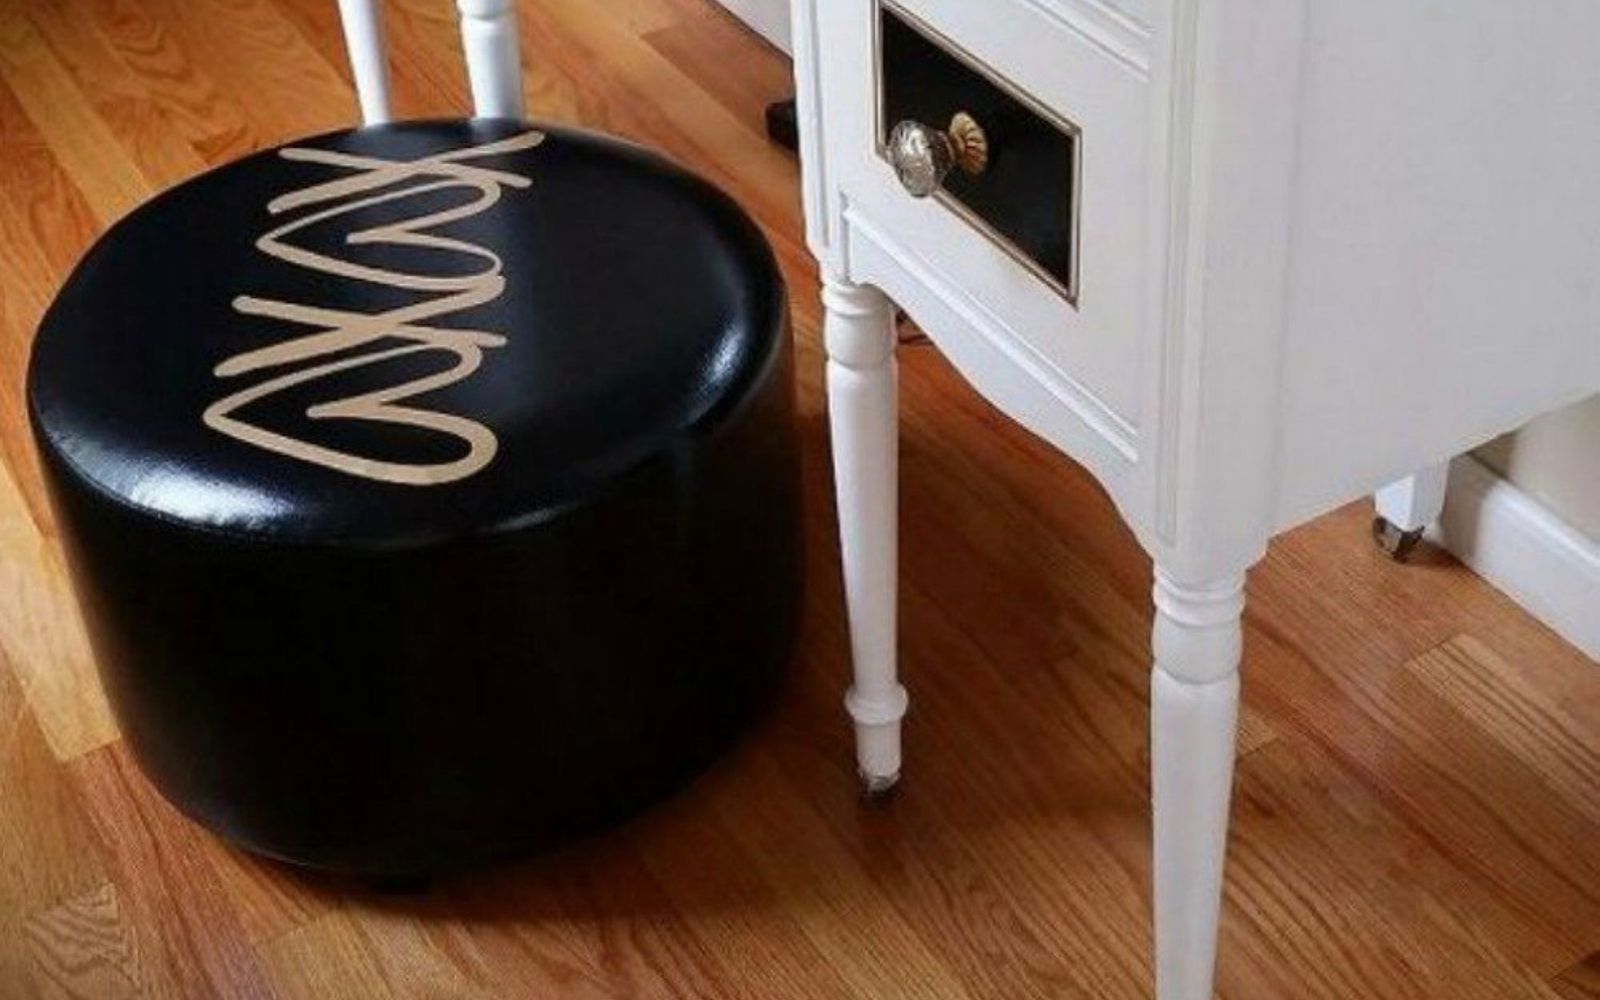 s decorate your living room for under 10 with these 15 ideas, Customize a glamorous moroccan pouf